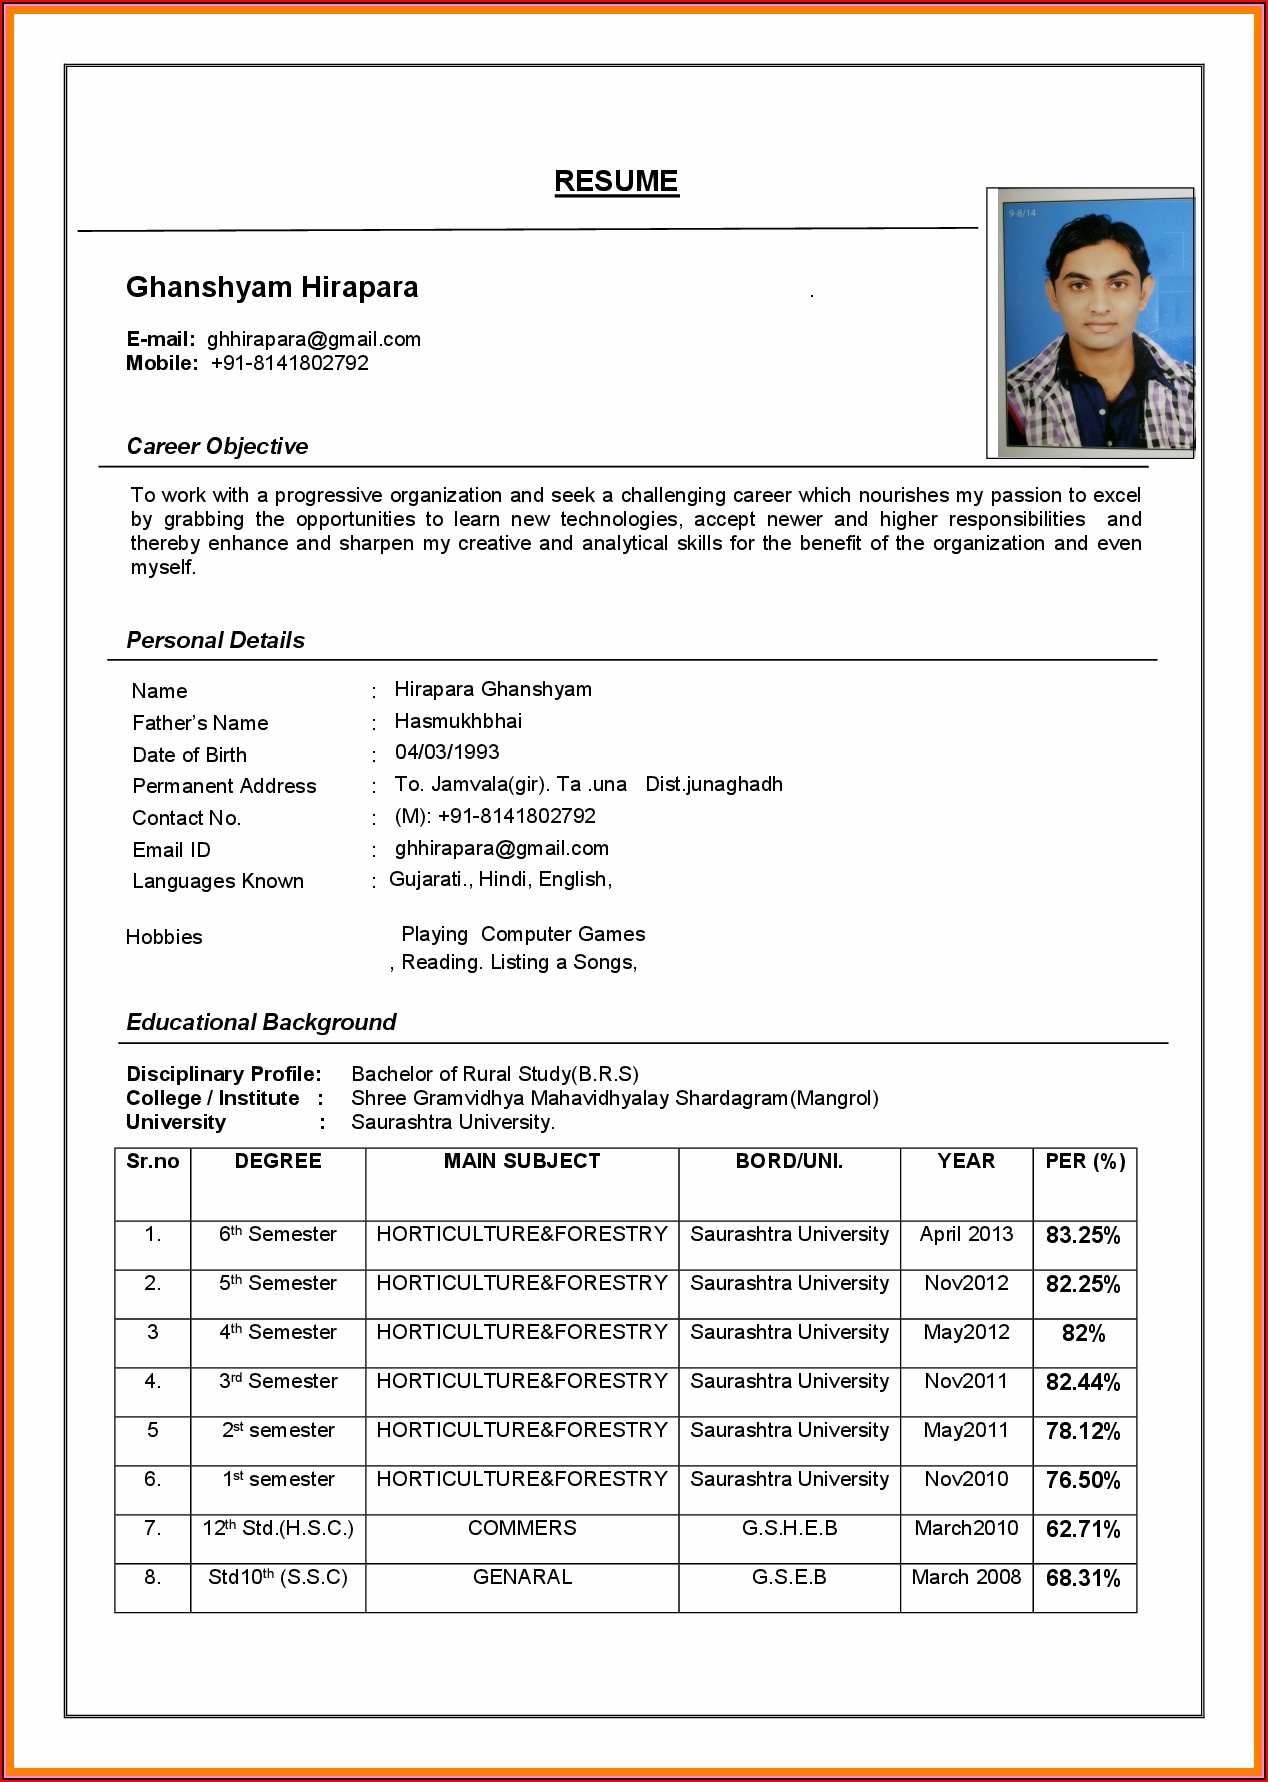 Sample Resume Format Word Document Download